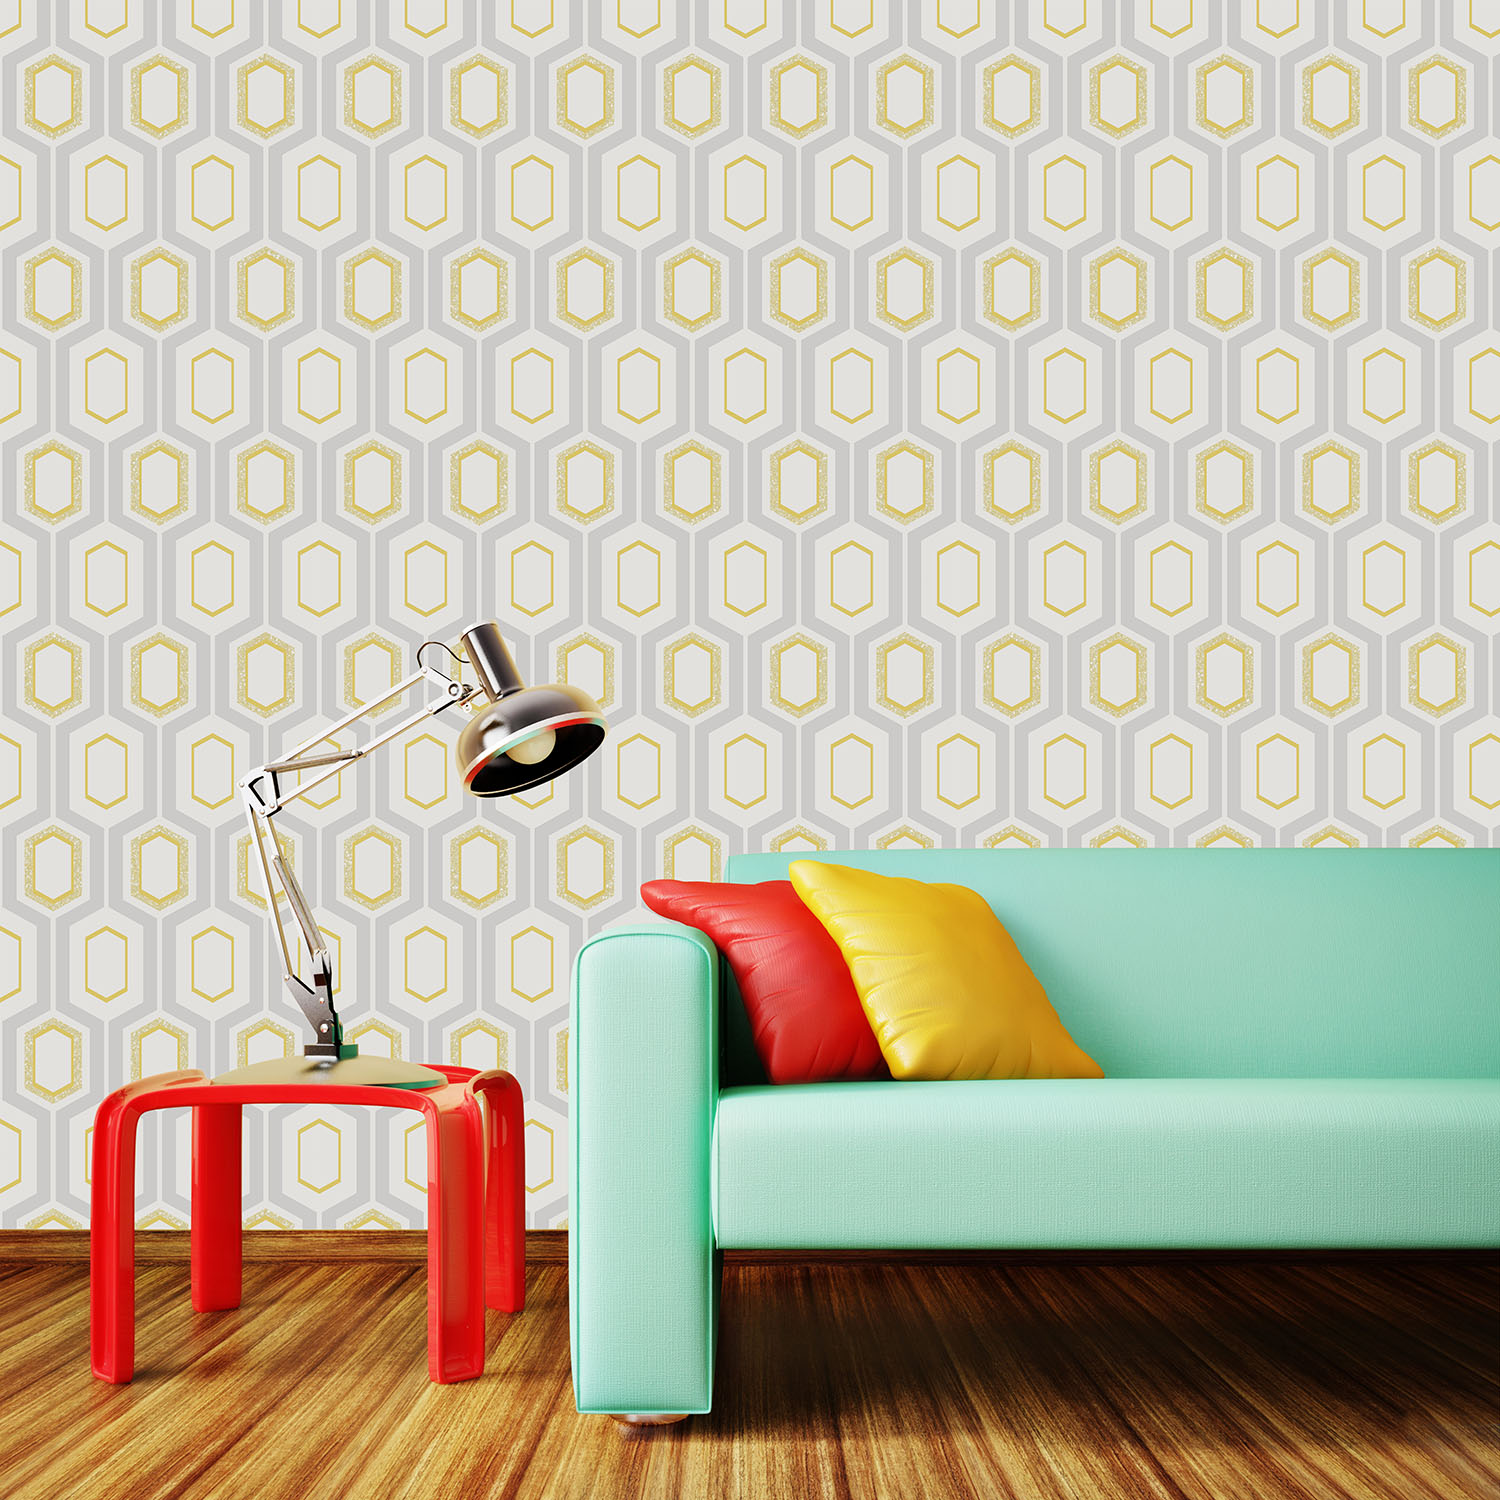 Wallpaper For Rooms 4 Spare Room Ideas Using Wallpaper  And How To Make A Small Room